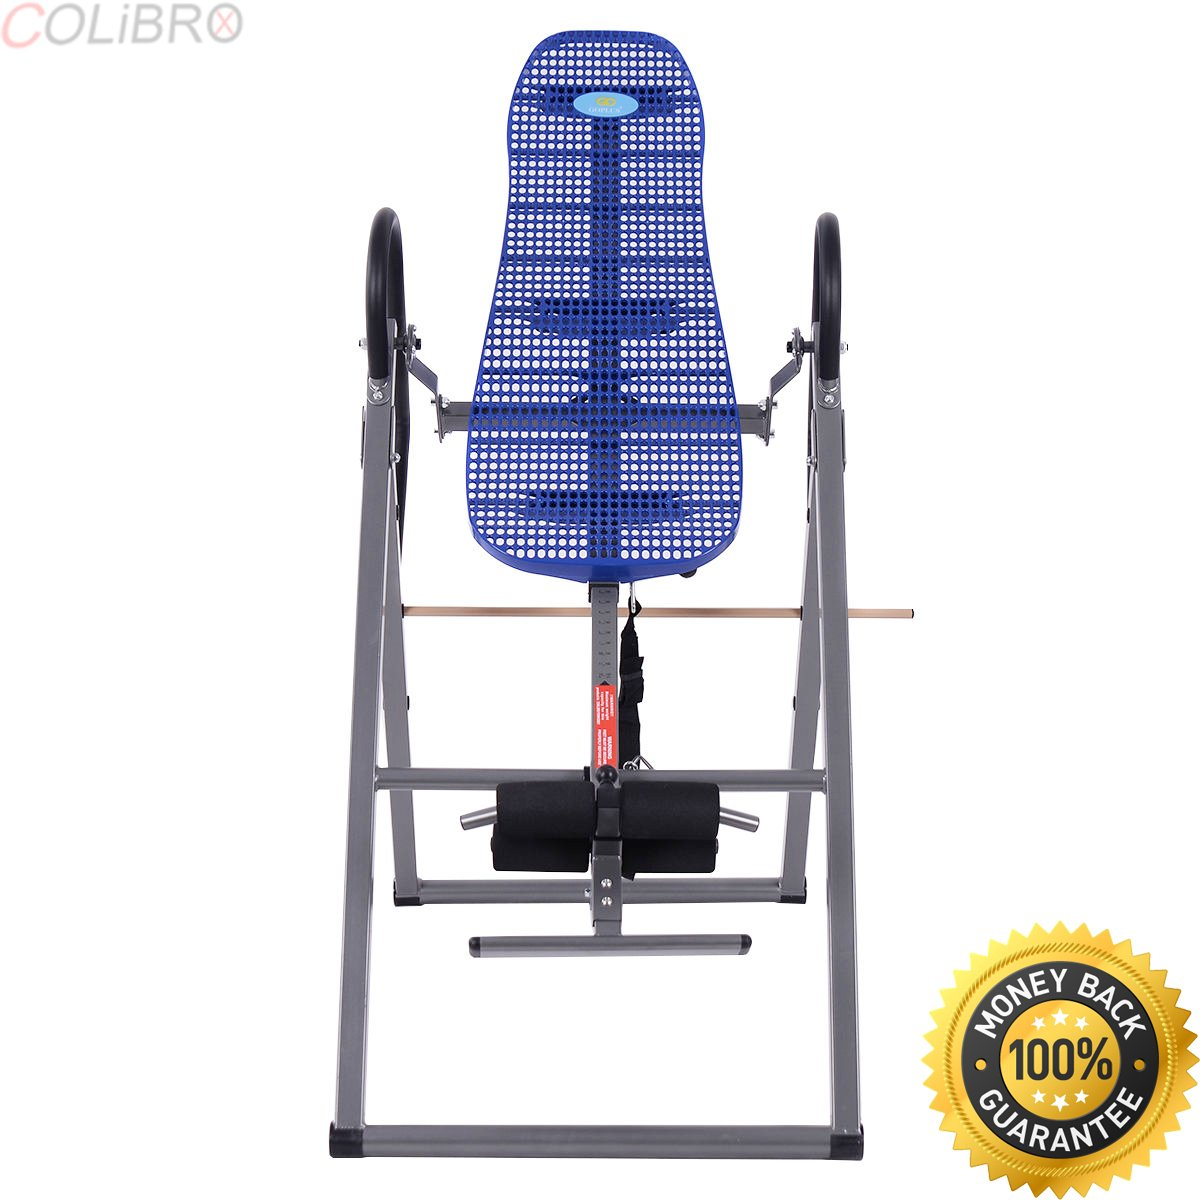 COLIBROX--Foldable ABS Inversion Table Gravity Therapy Back Pain Fitness Reflexology Blue. stamina products gravity inversion therapy table.best calm brand inversion table amazon.calm inversion table.